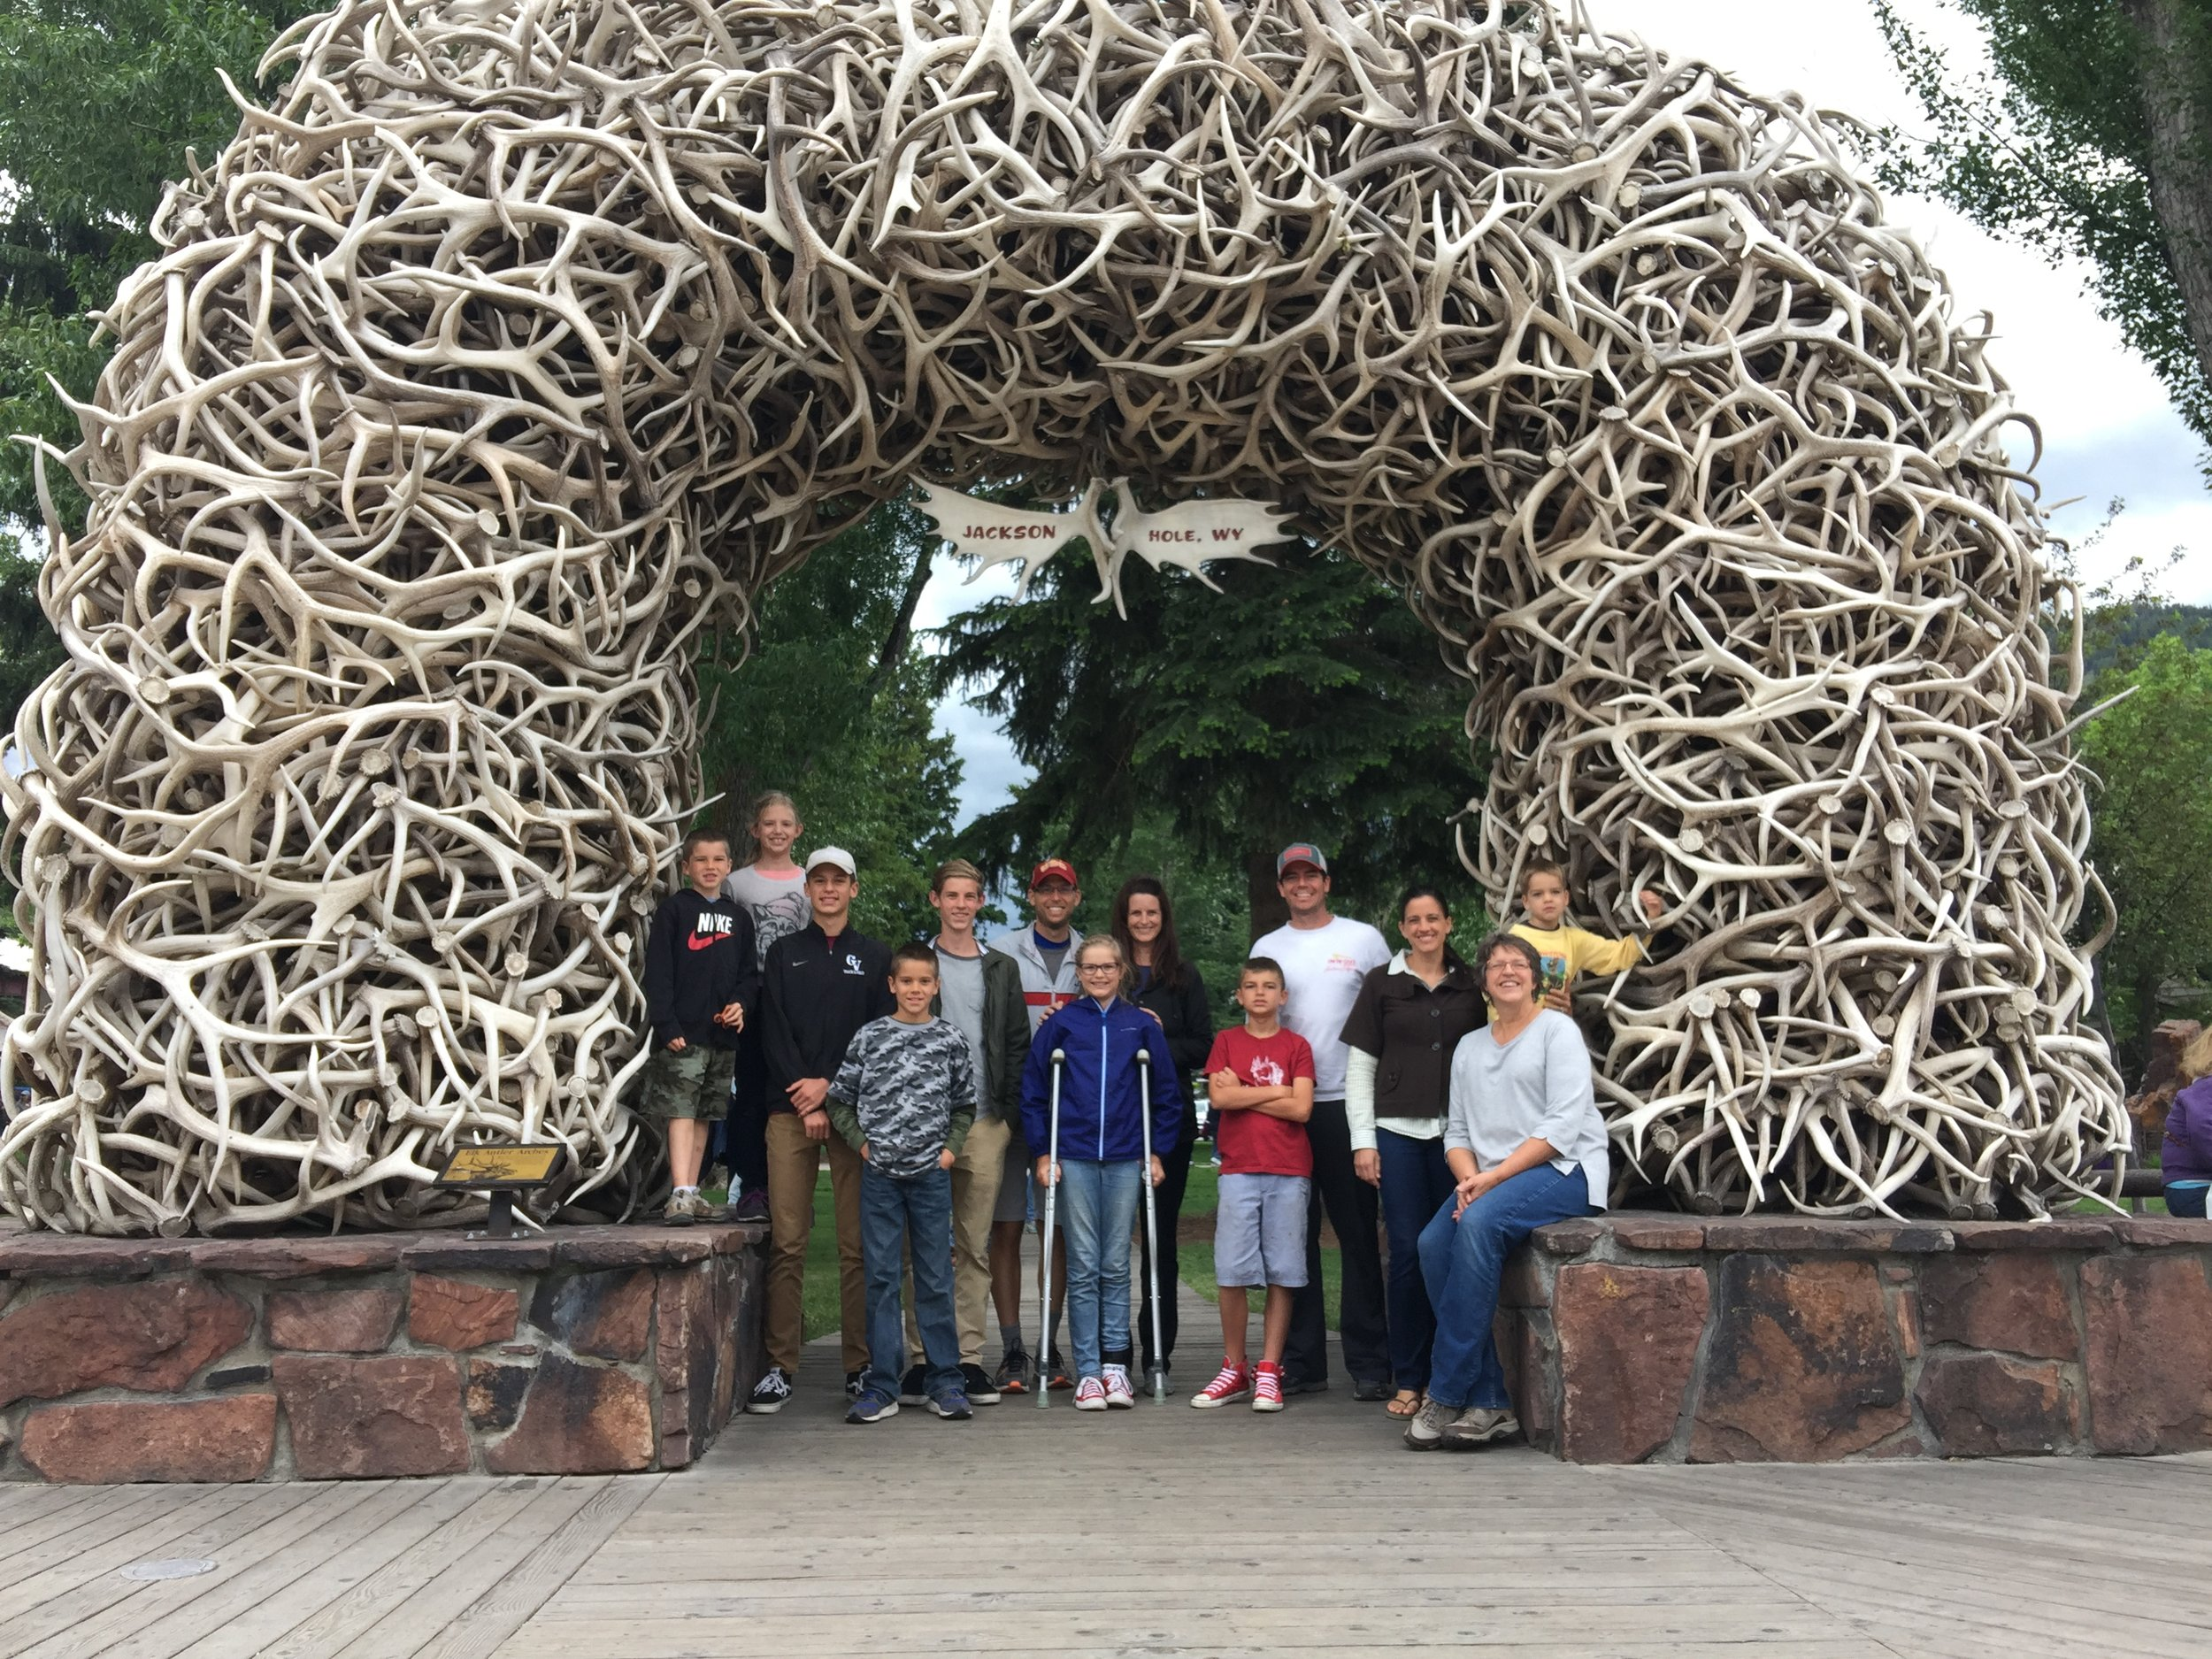 The whole gang in Jackson, WY!  Gateway to the Tetons, Yellowstone and a wonderful family road trip!